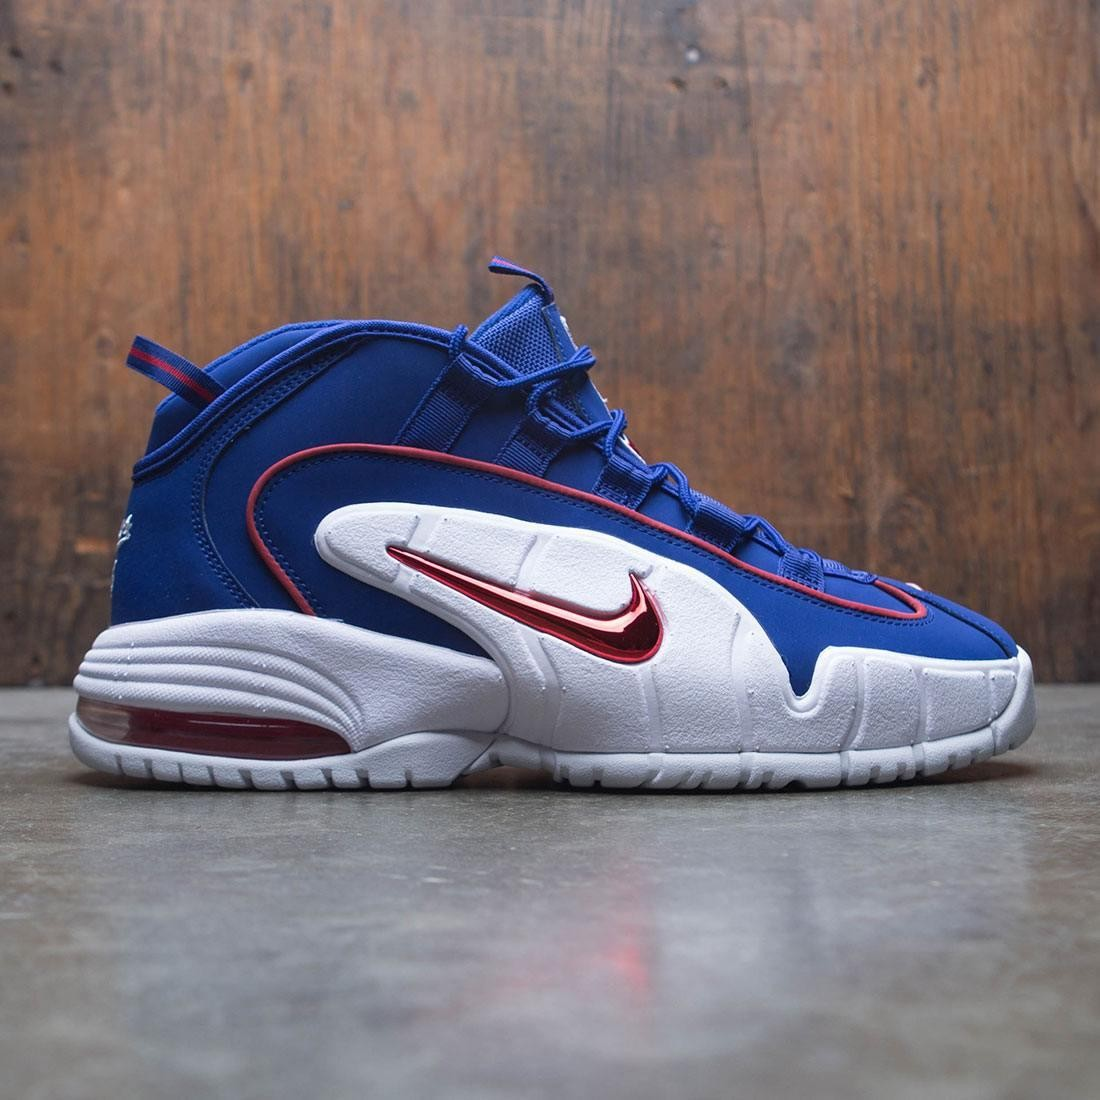 6d3219bbc1e ... coupon code for nike men air max penny deep royal blue gym red white  3ecfa c9d96